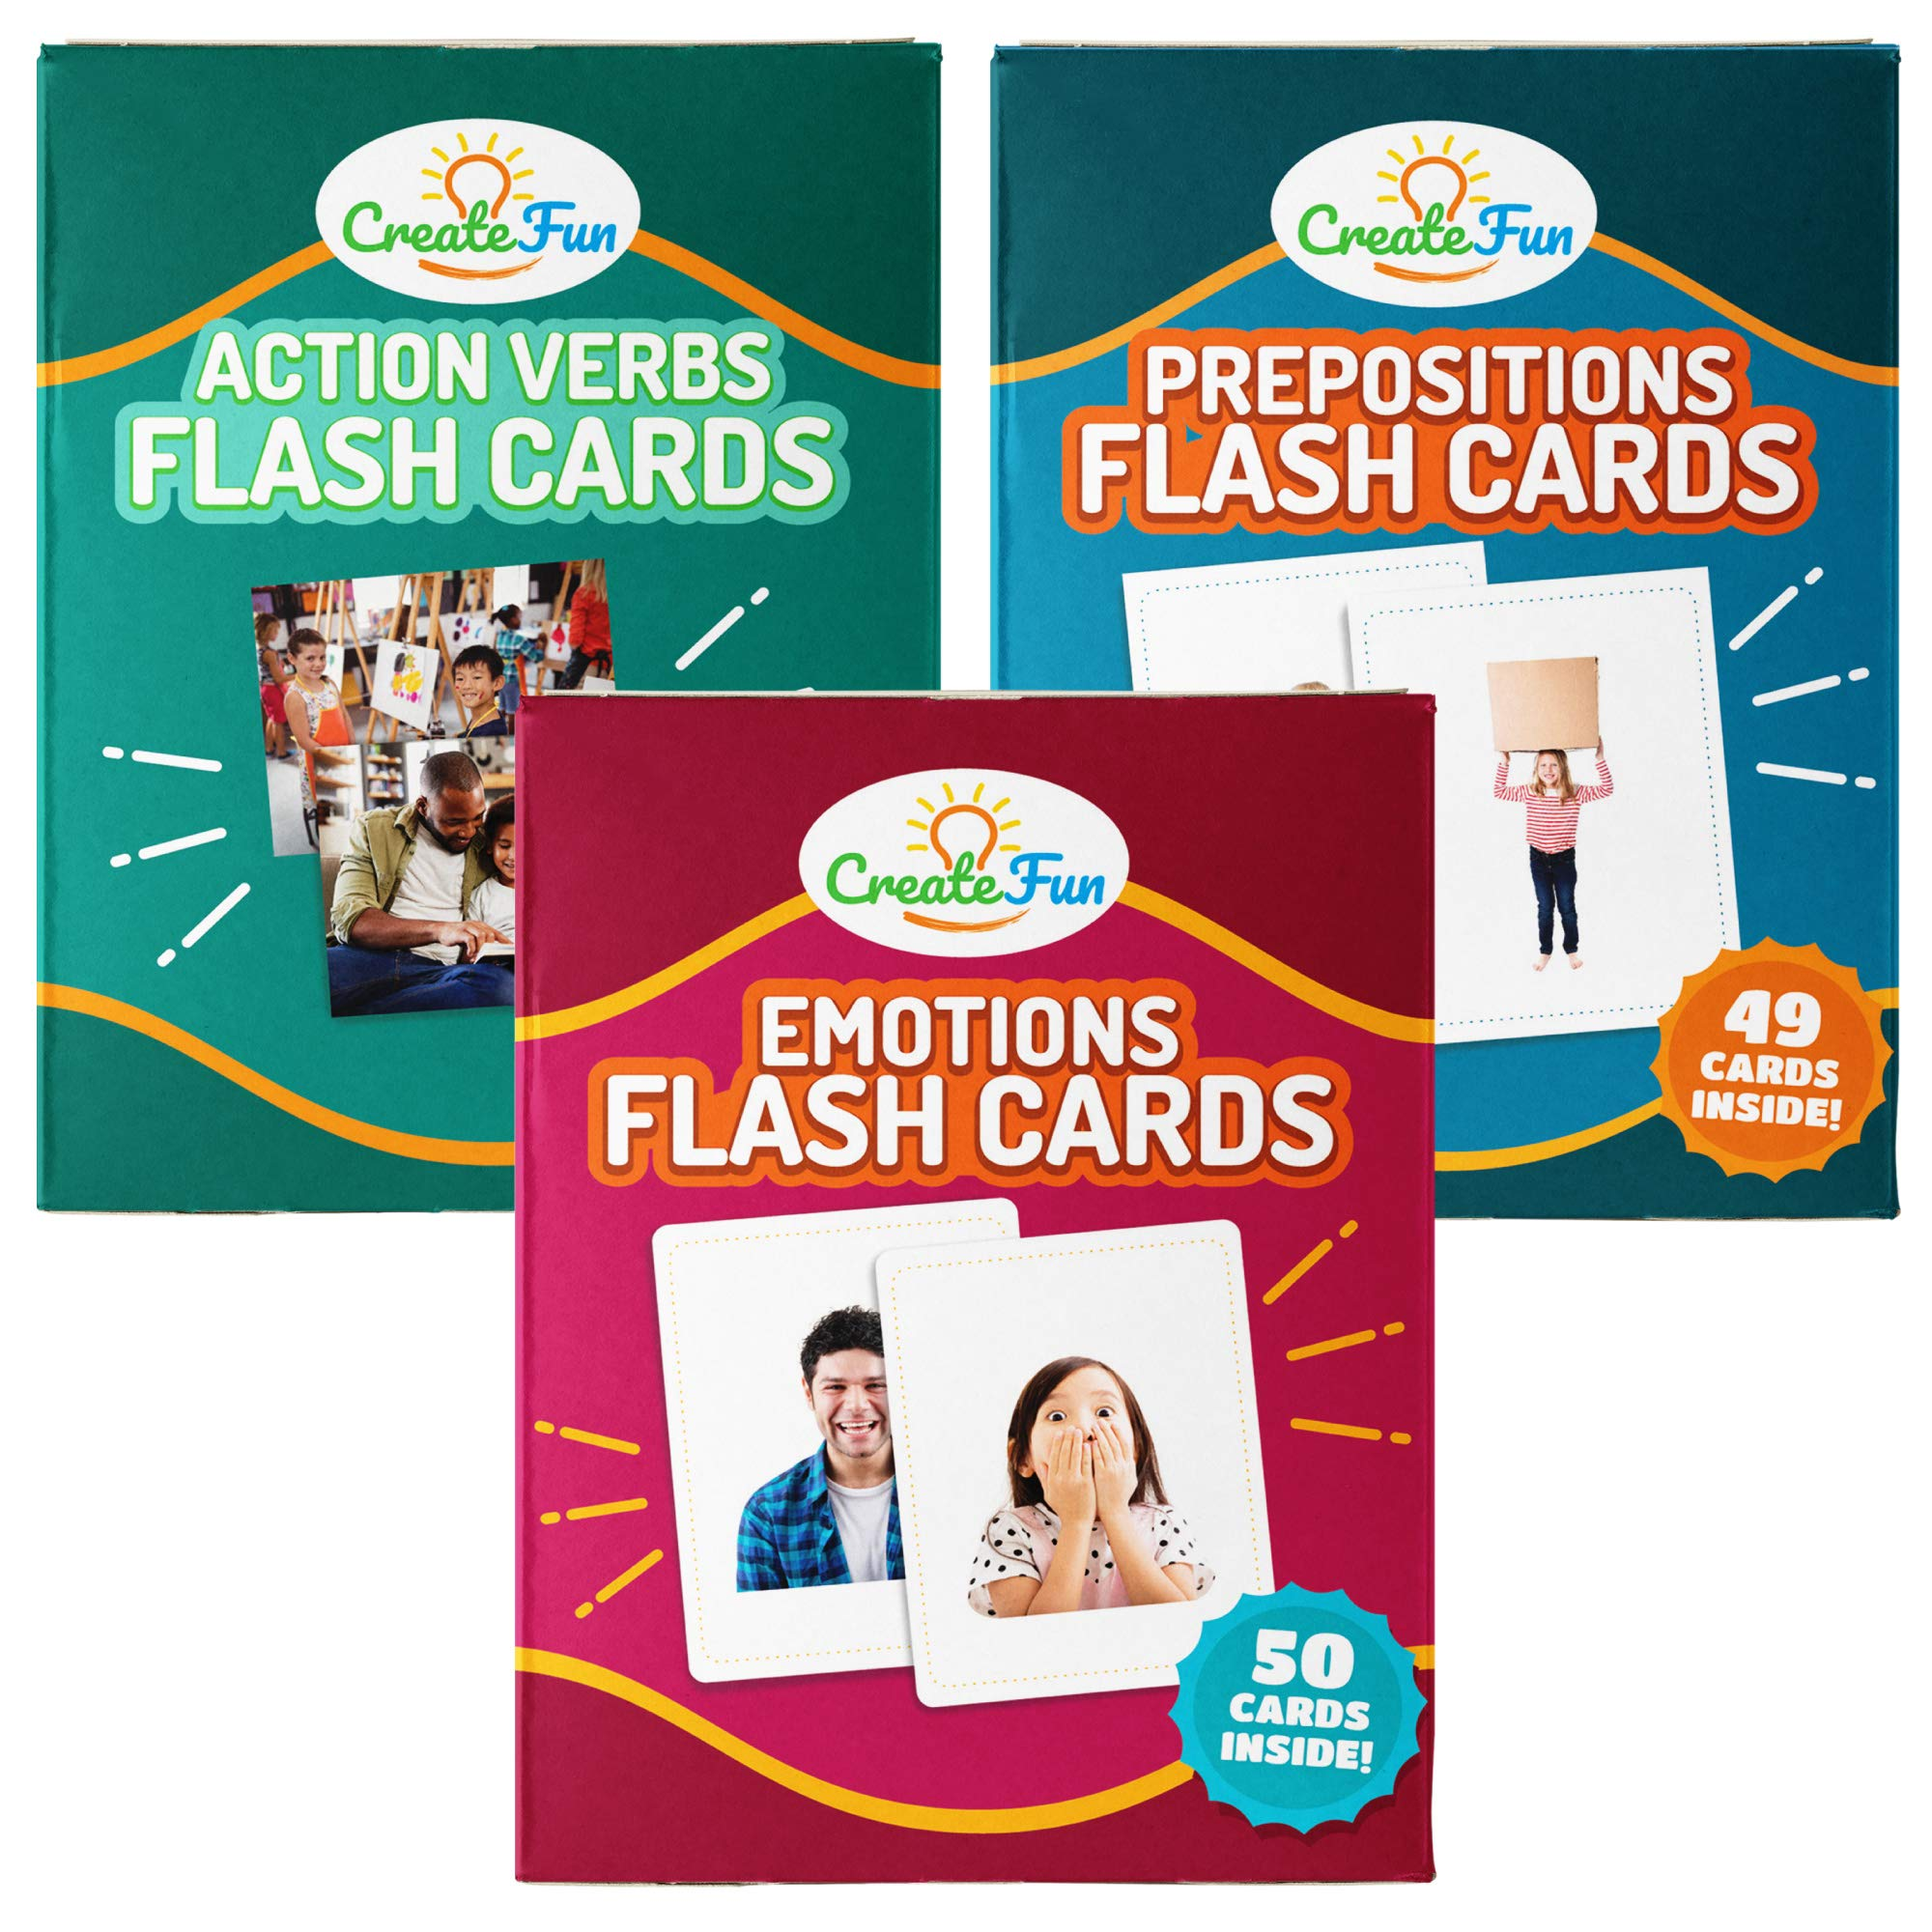 Prepositions, Emotions & Verbs Flash Cards Gift Set - 149 Educational Photo Cards with Learning Games - for Toddler, Preschool Prep, Adults, Speech Therapy Materials and ESL Teaching Materials by CreateFun